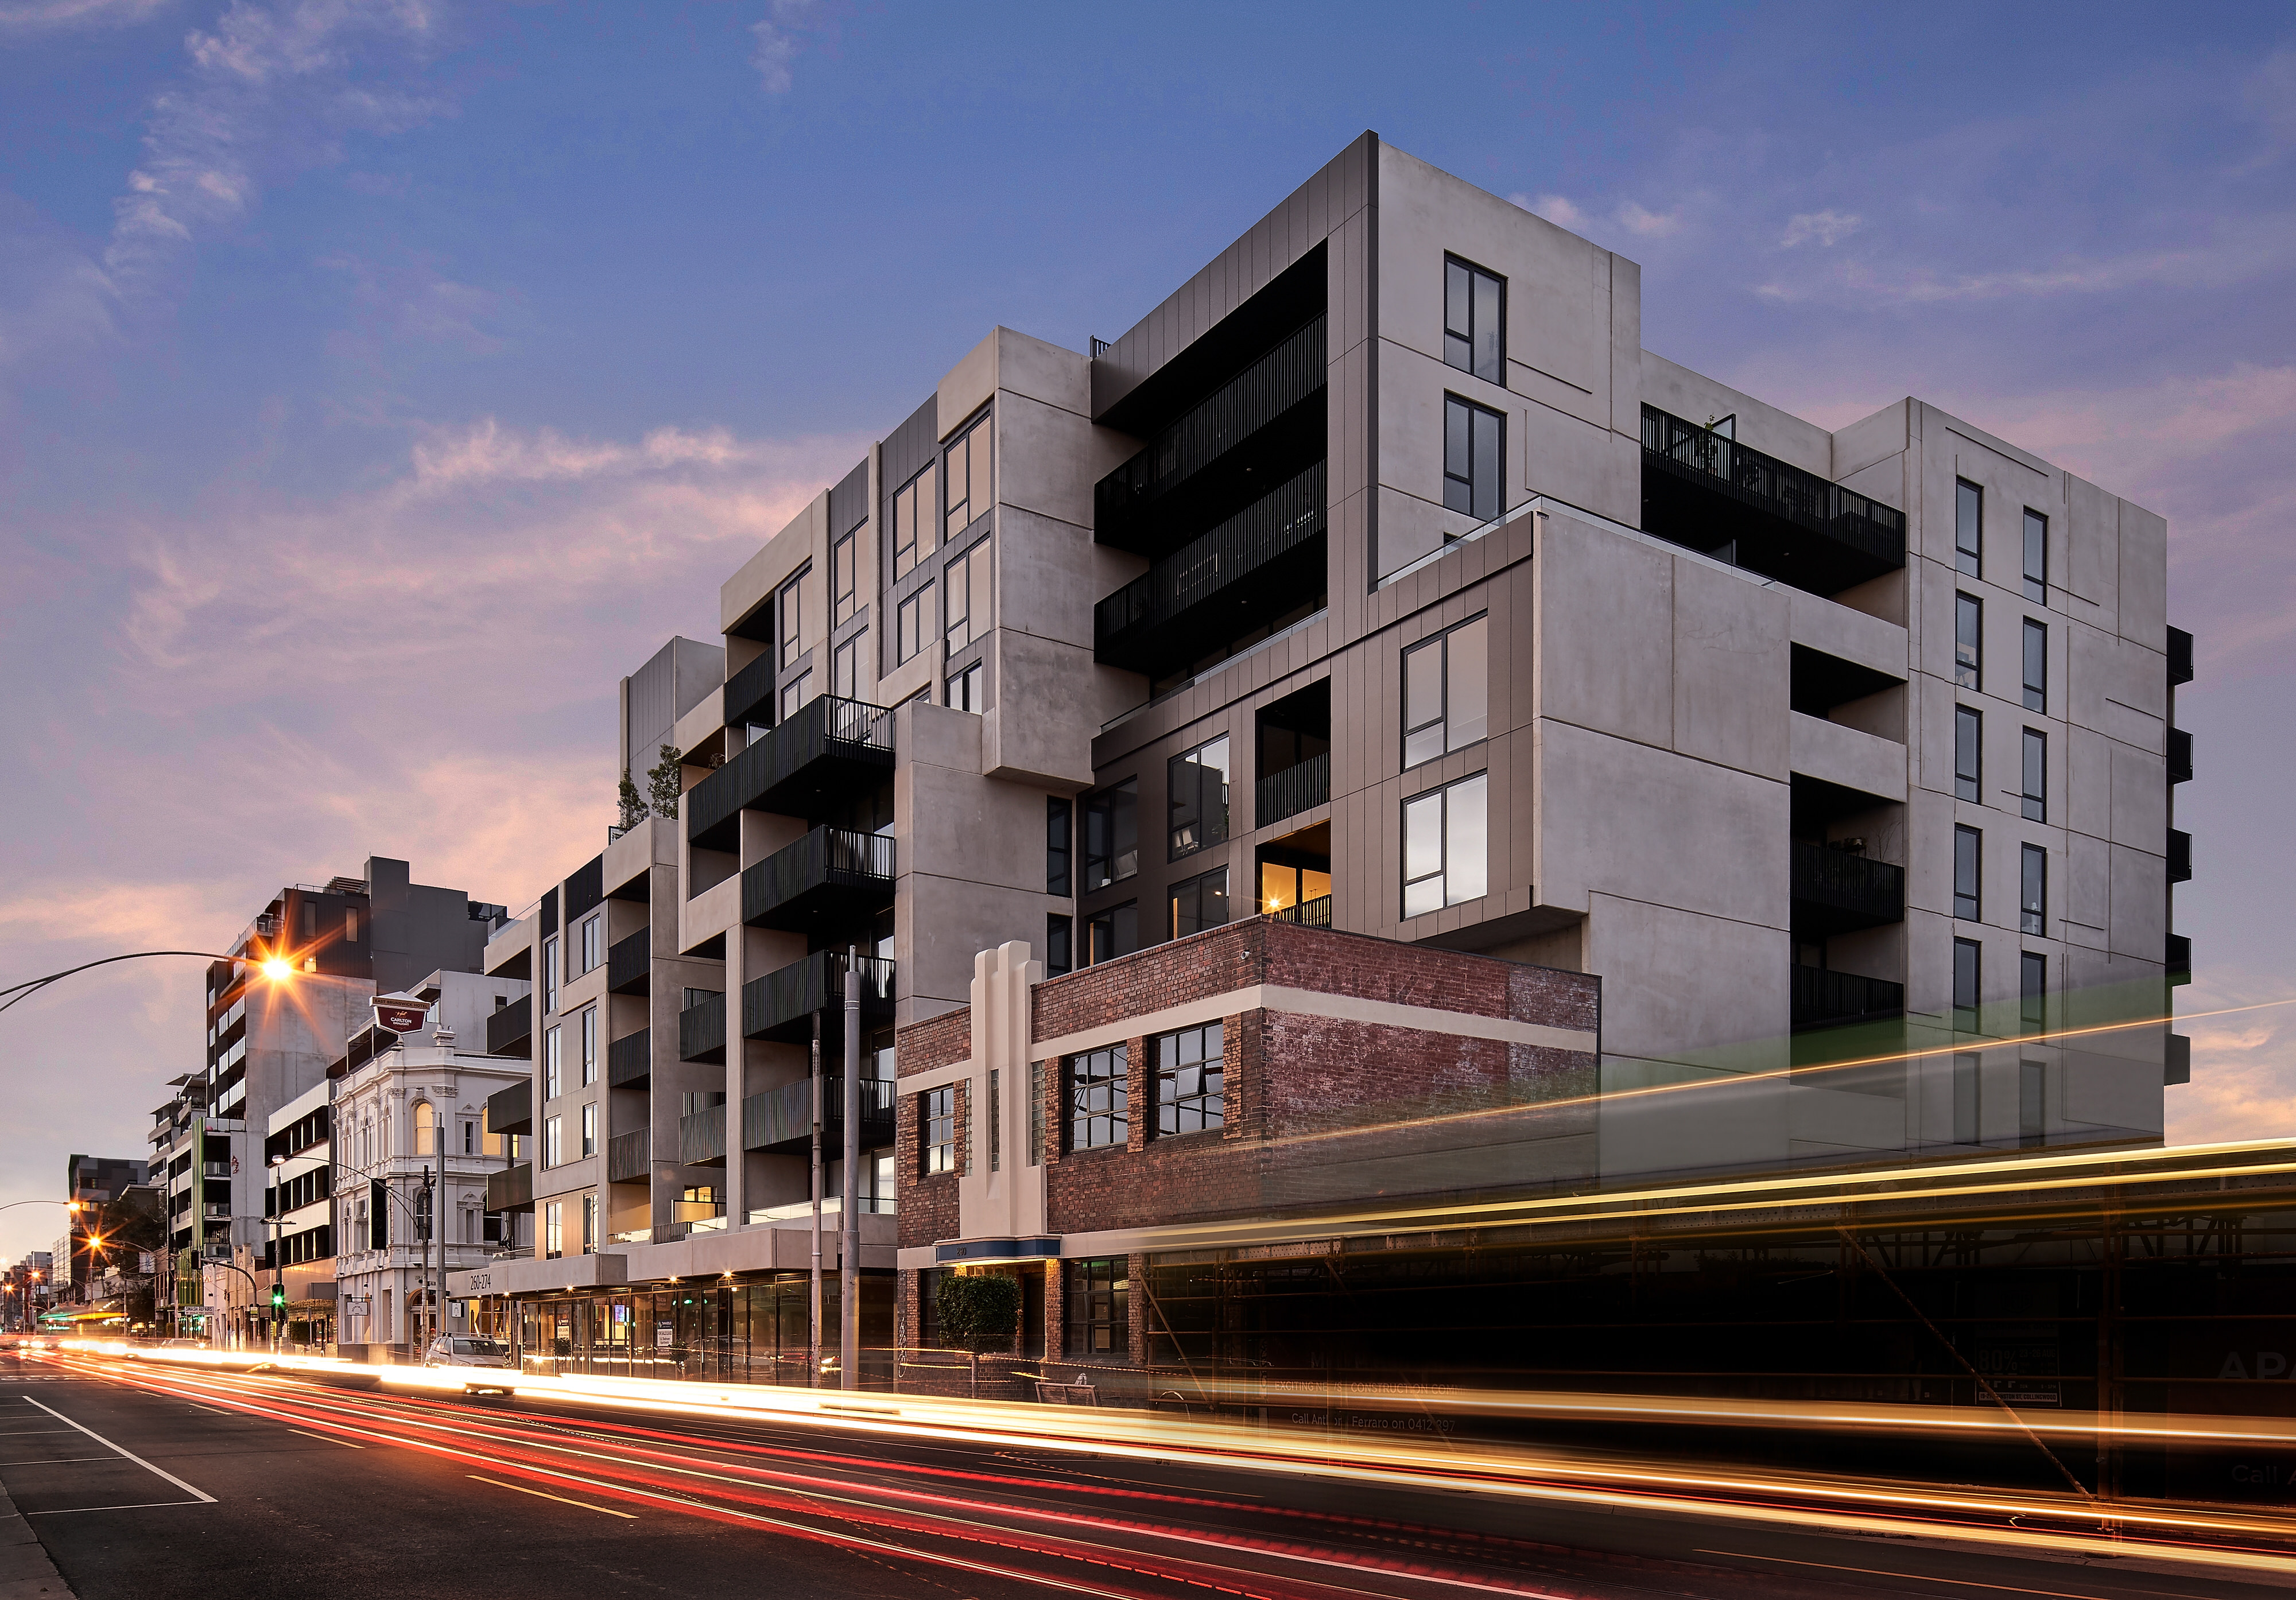 Concrete architect designed apartment building with integrated with heritage listed victorian brick building on Lygon Street in Melbourne.